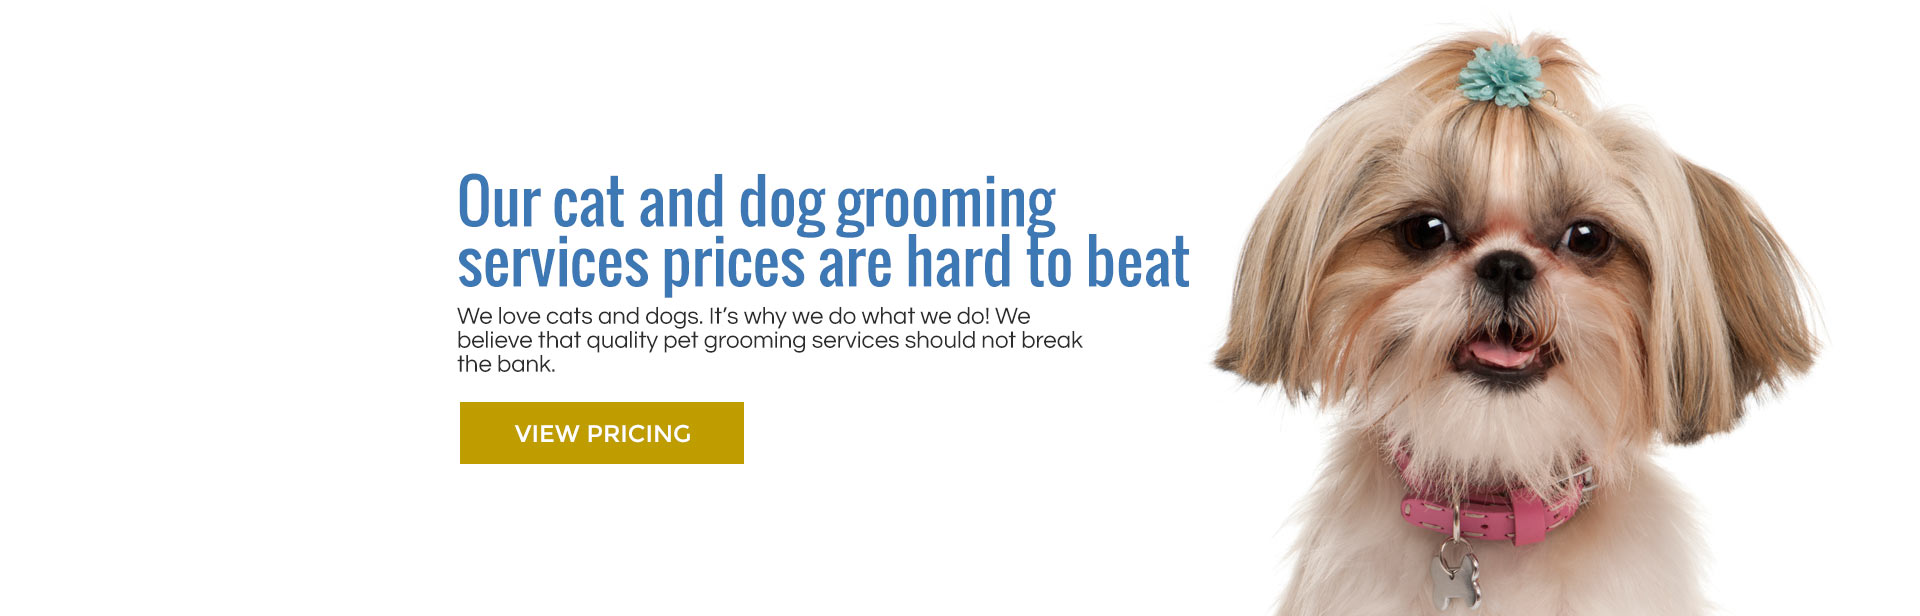 Affordable grooming services for cats and dogs